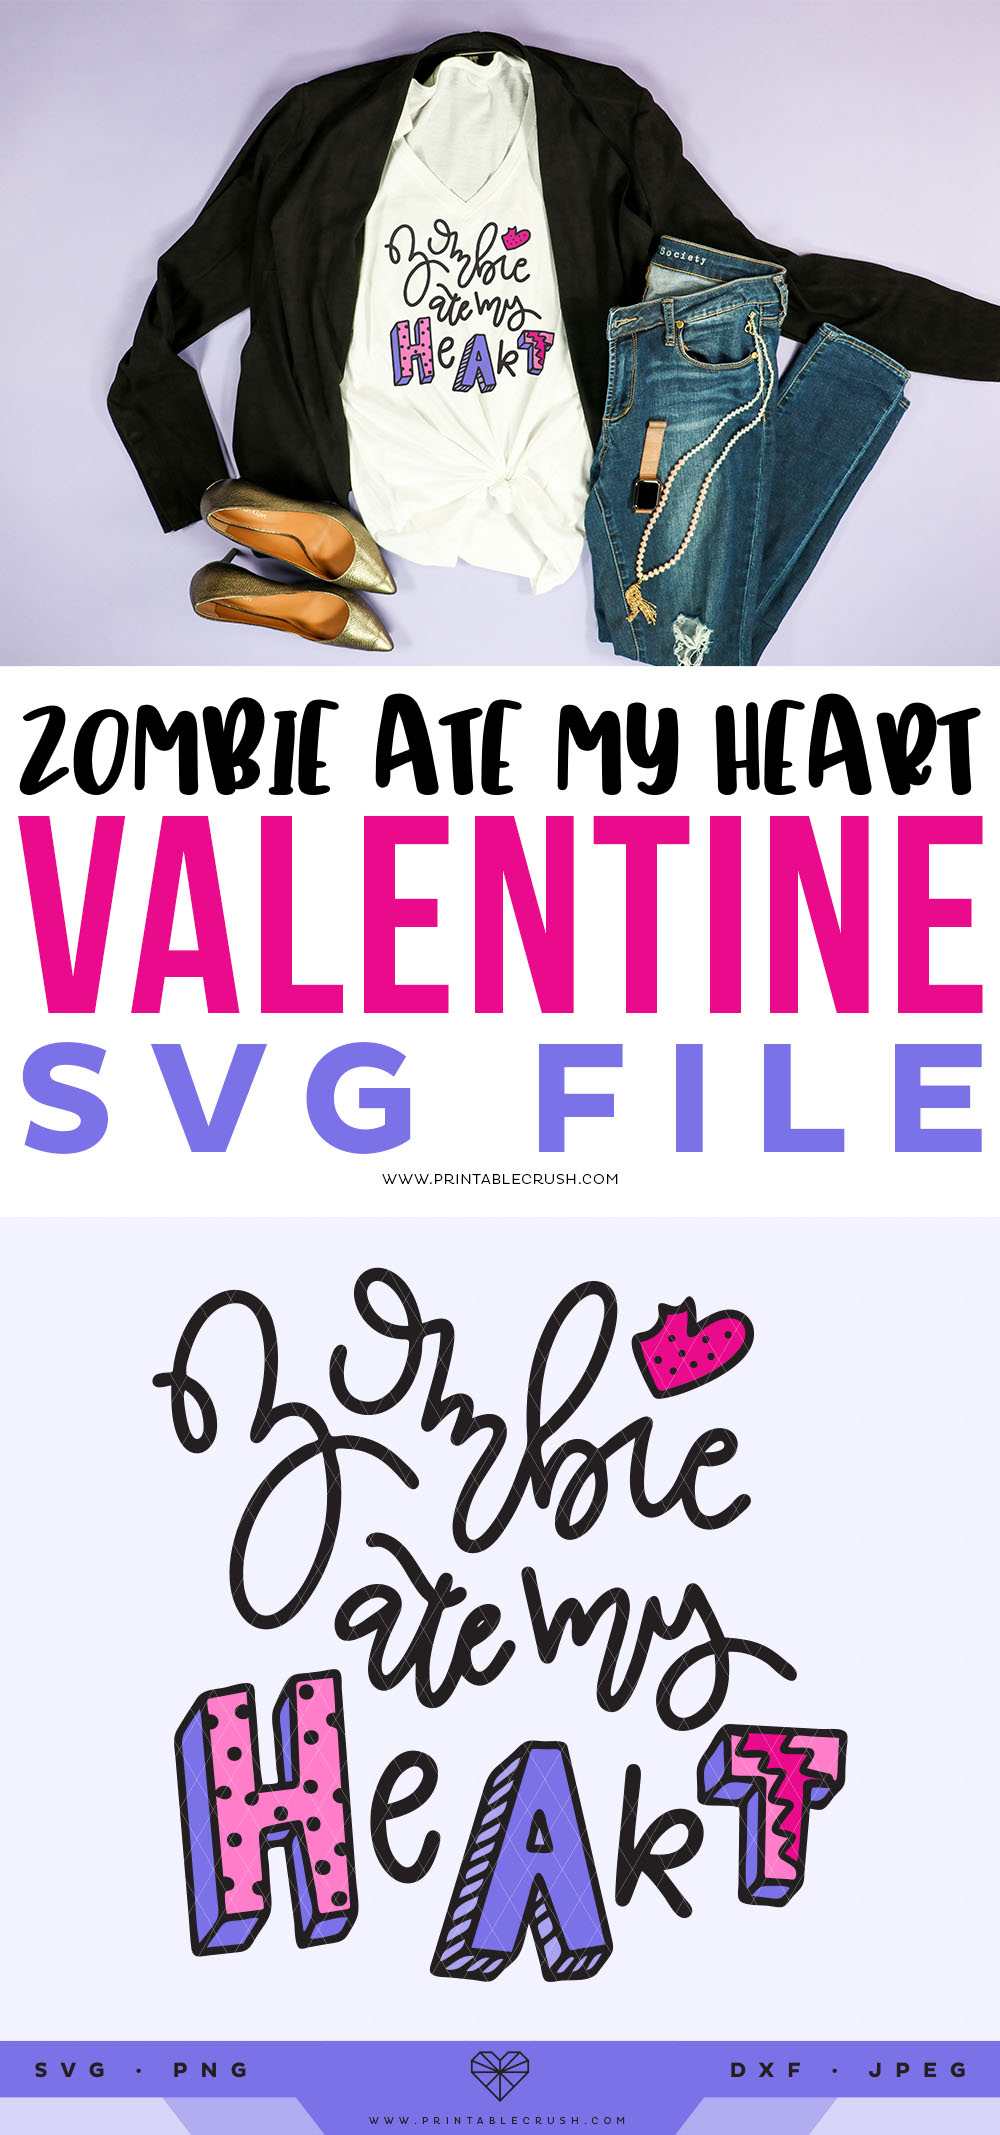 Anti-Valentine Free SVG File - Free Valentine SVG File - Zombie Ate My Heart SVG File - Printable Crush